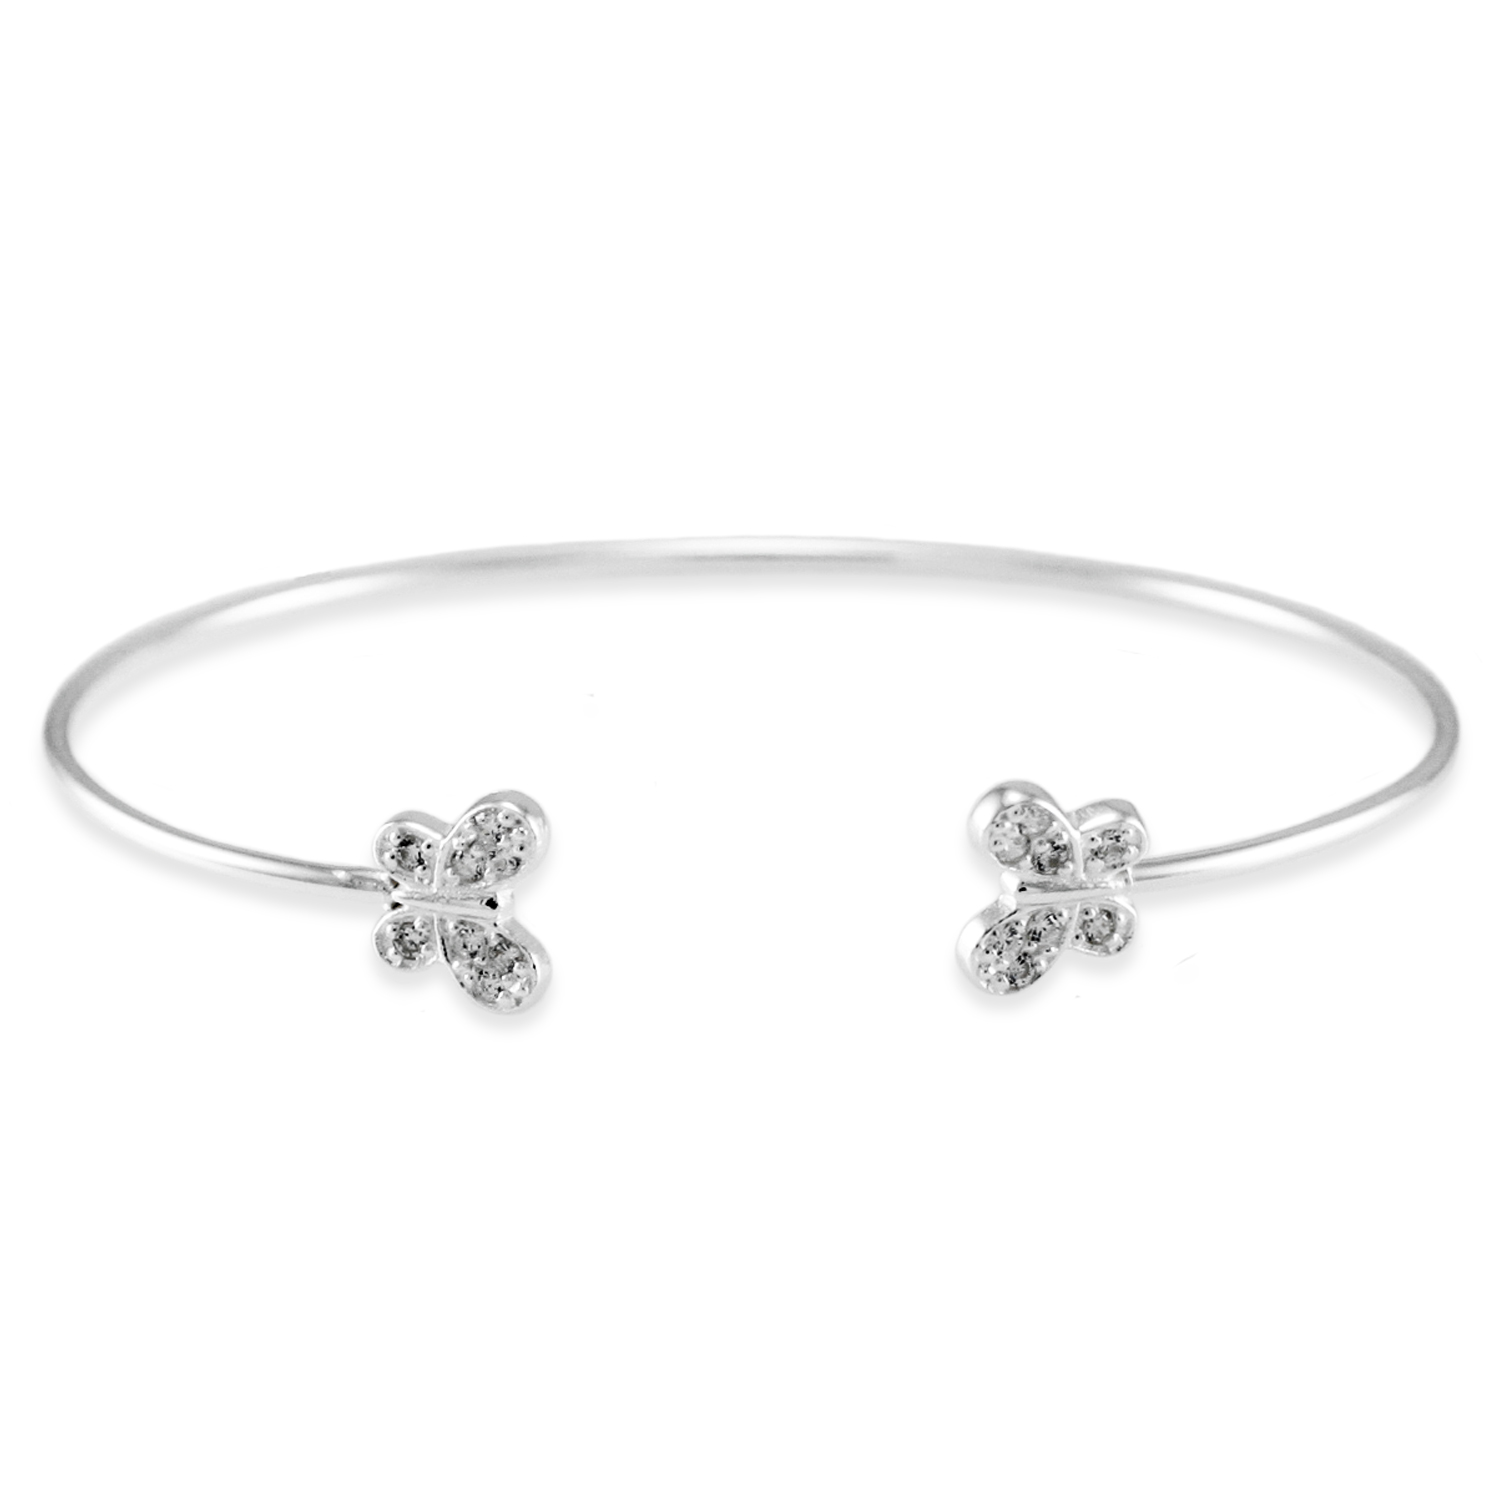 925 Sterling Silver Cubic Zirconia Twin Butterfly Design BANGLE